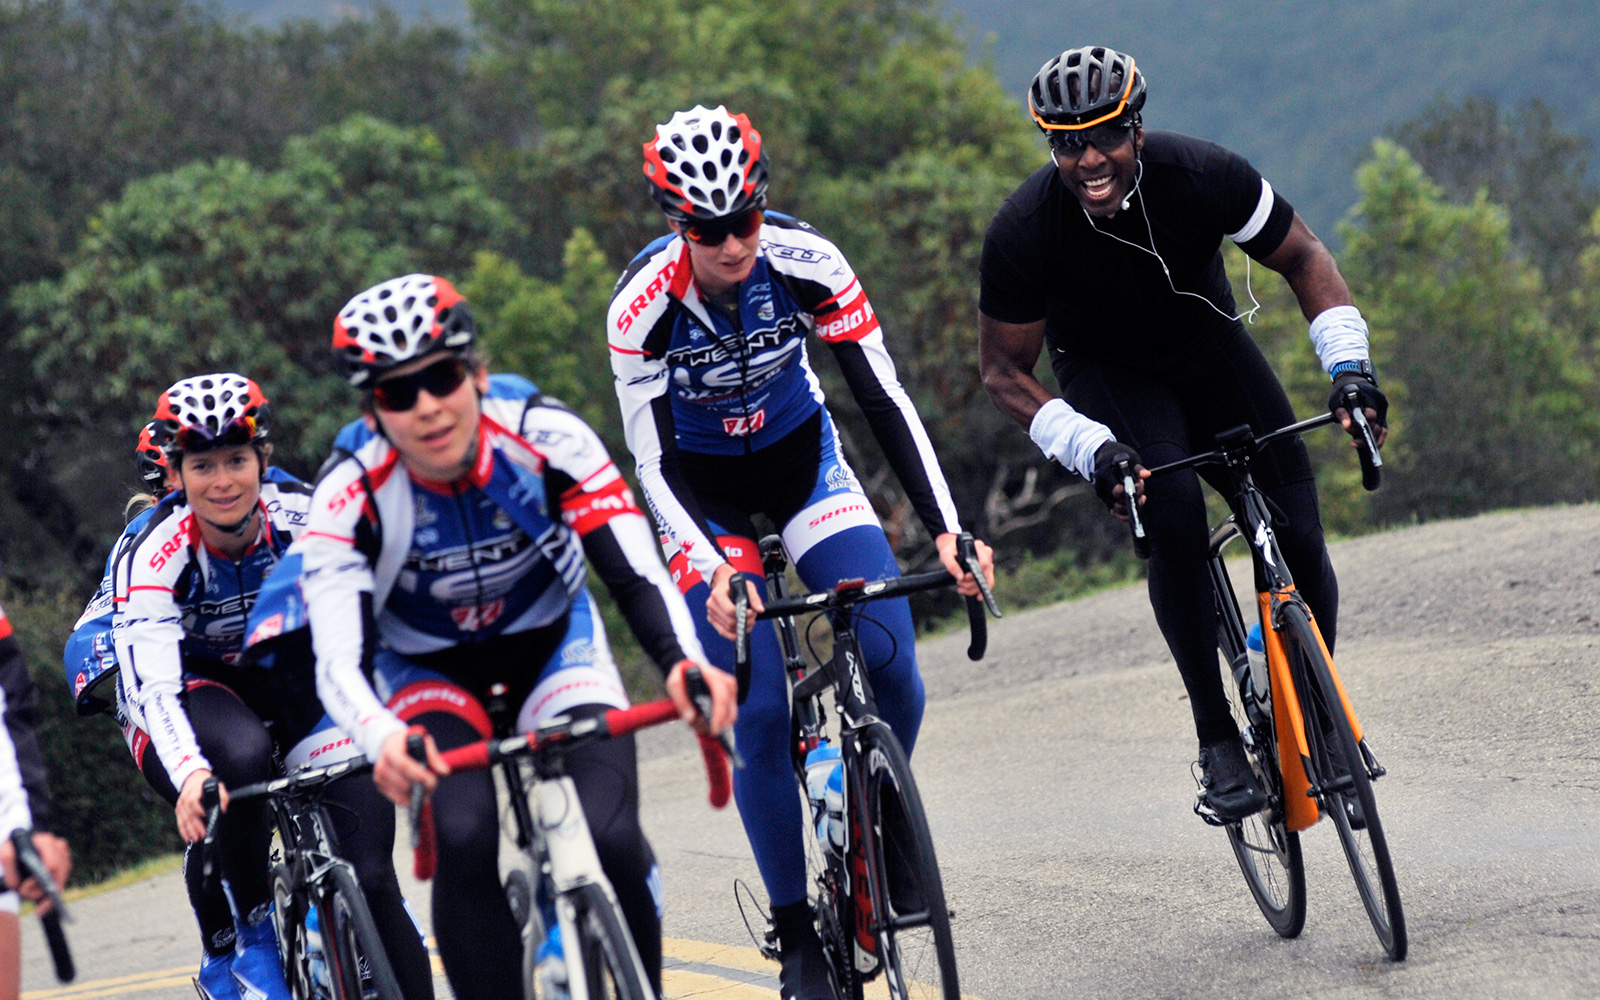 Barry Bonds uses money and resources to support women s cycling 601f7cf7b